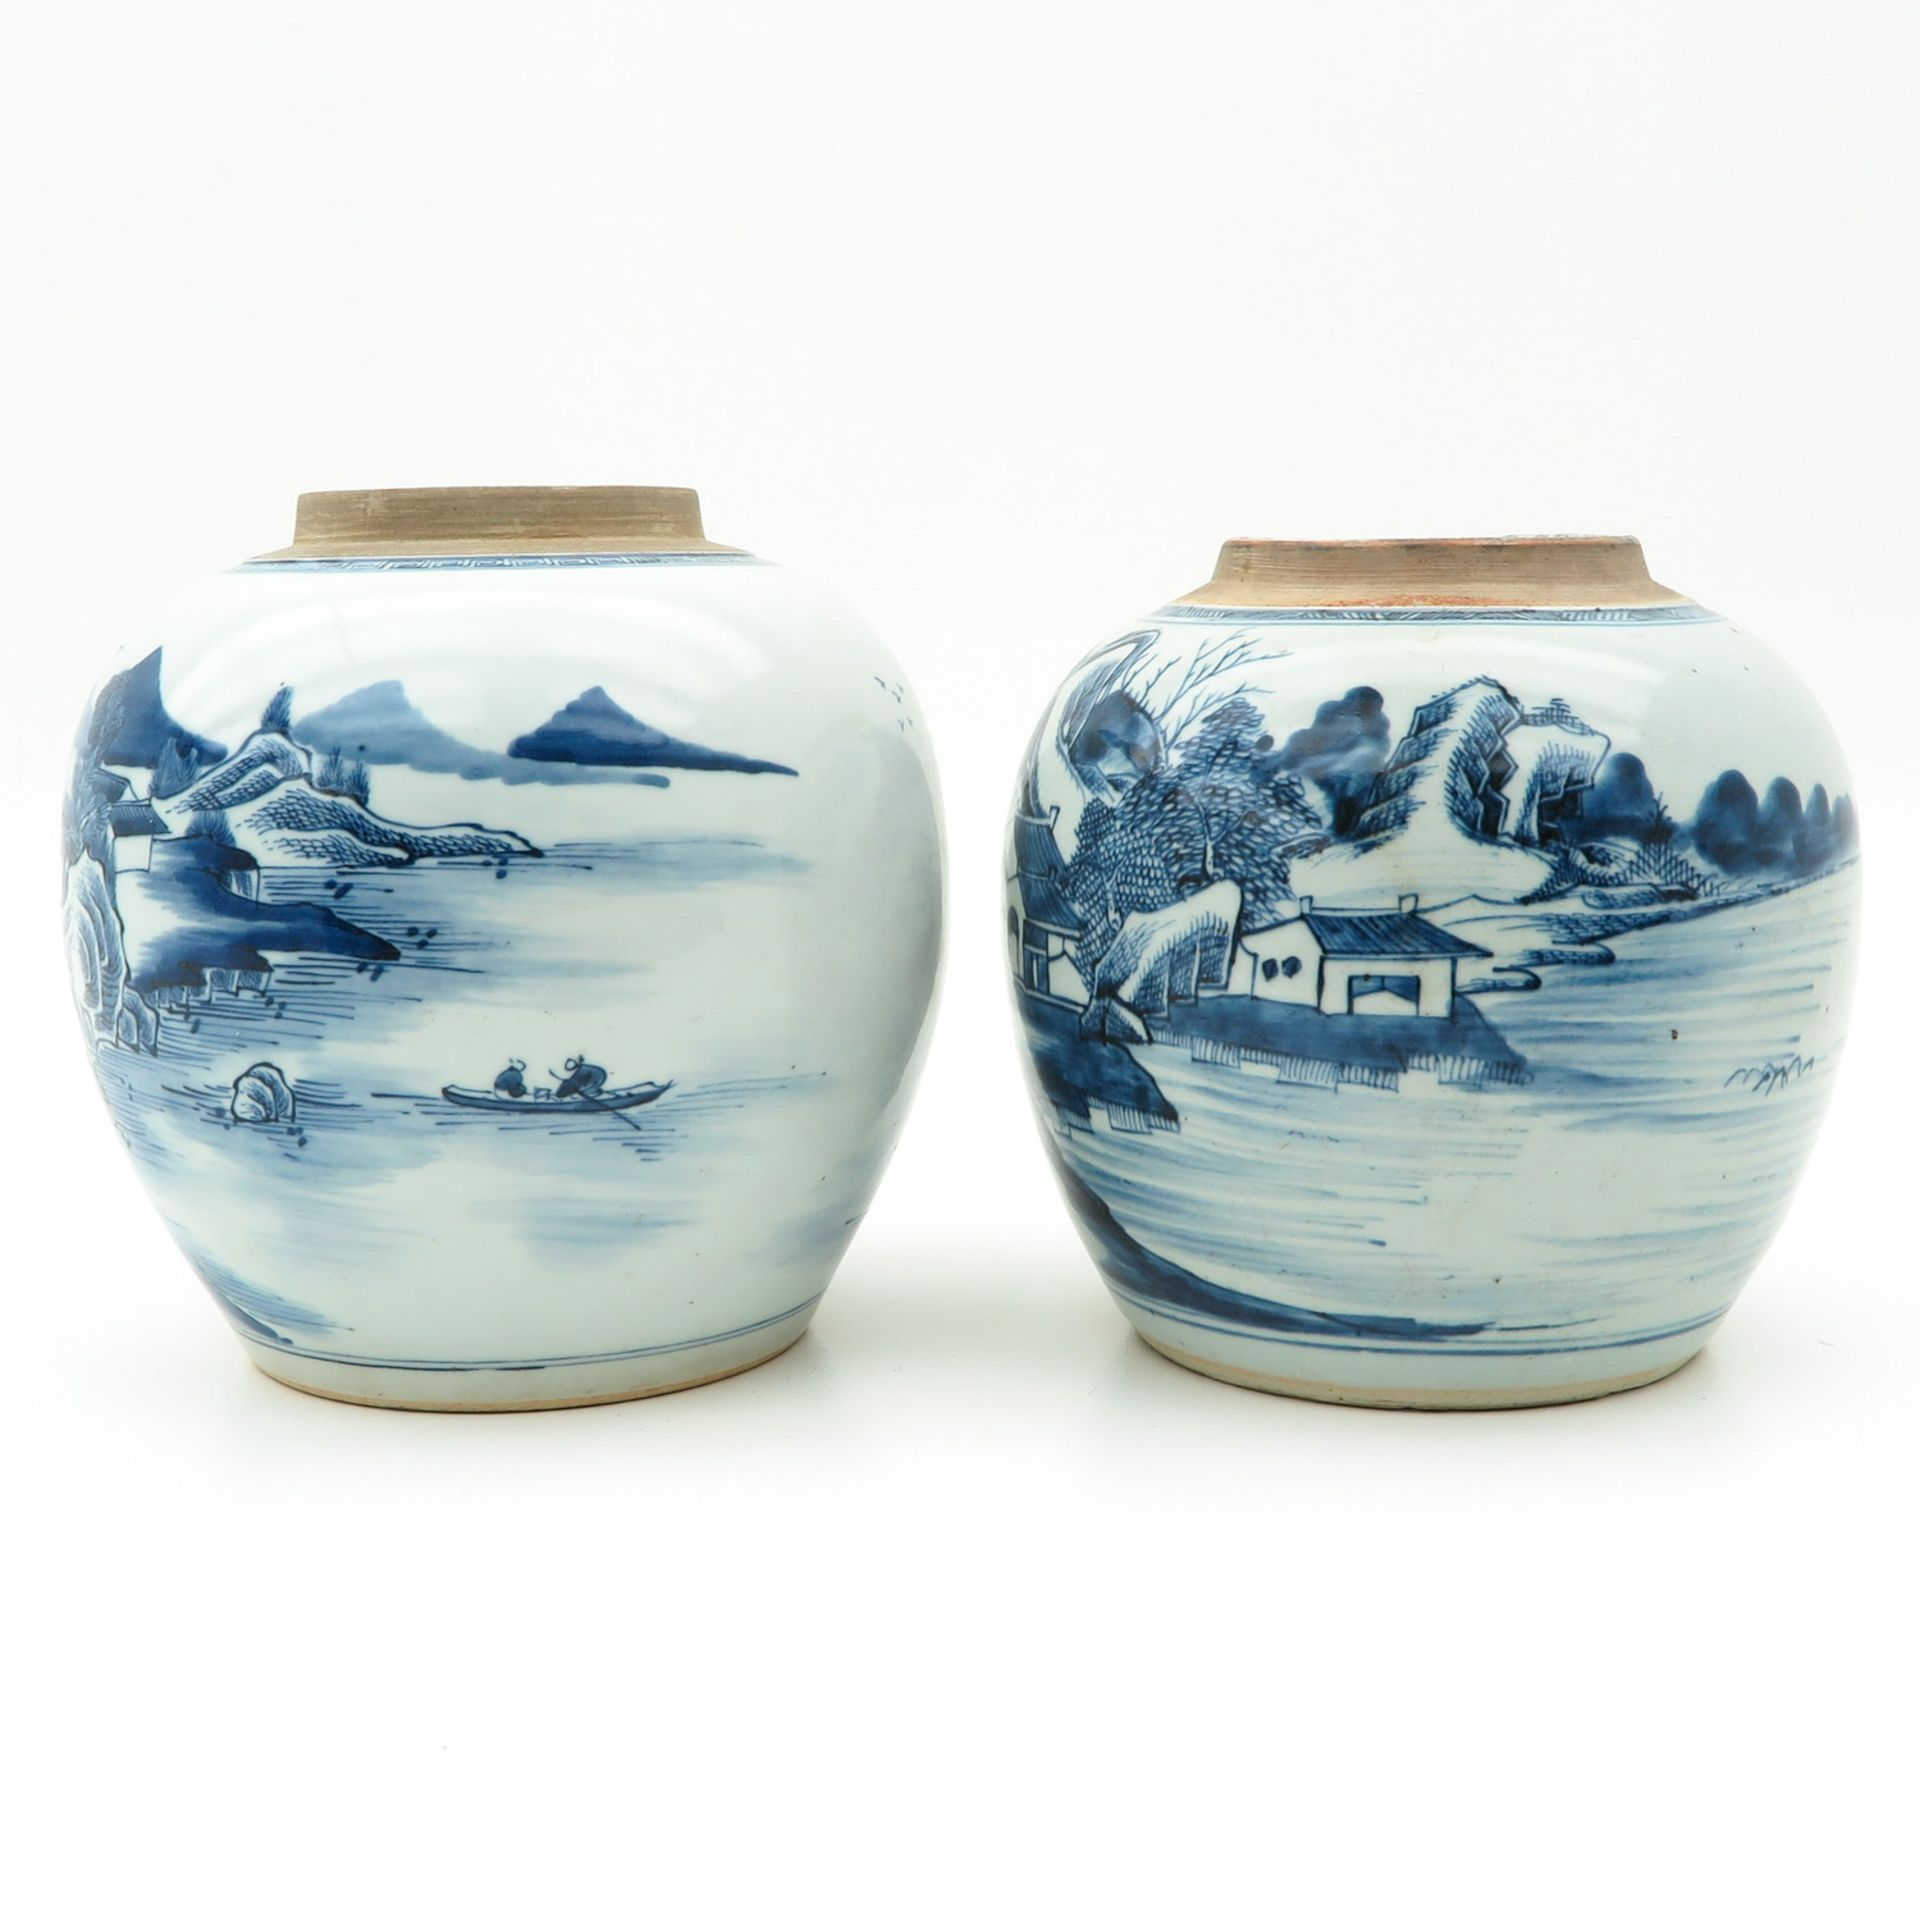 Los 7008 - A Pair of Blue and White Ginger Jars